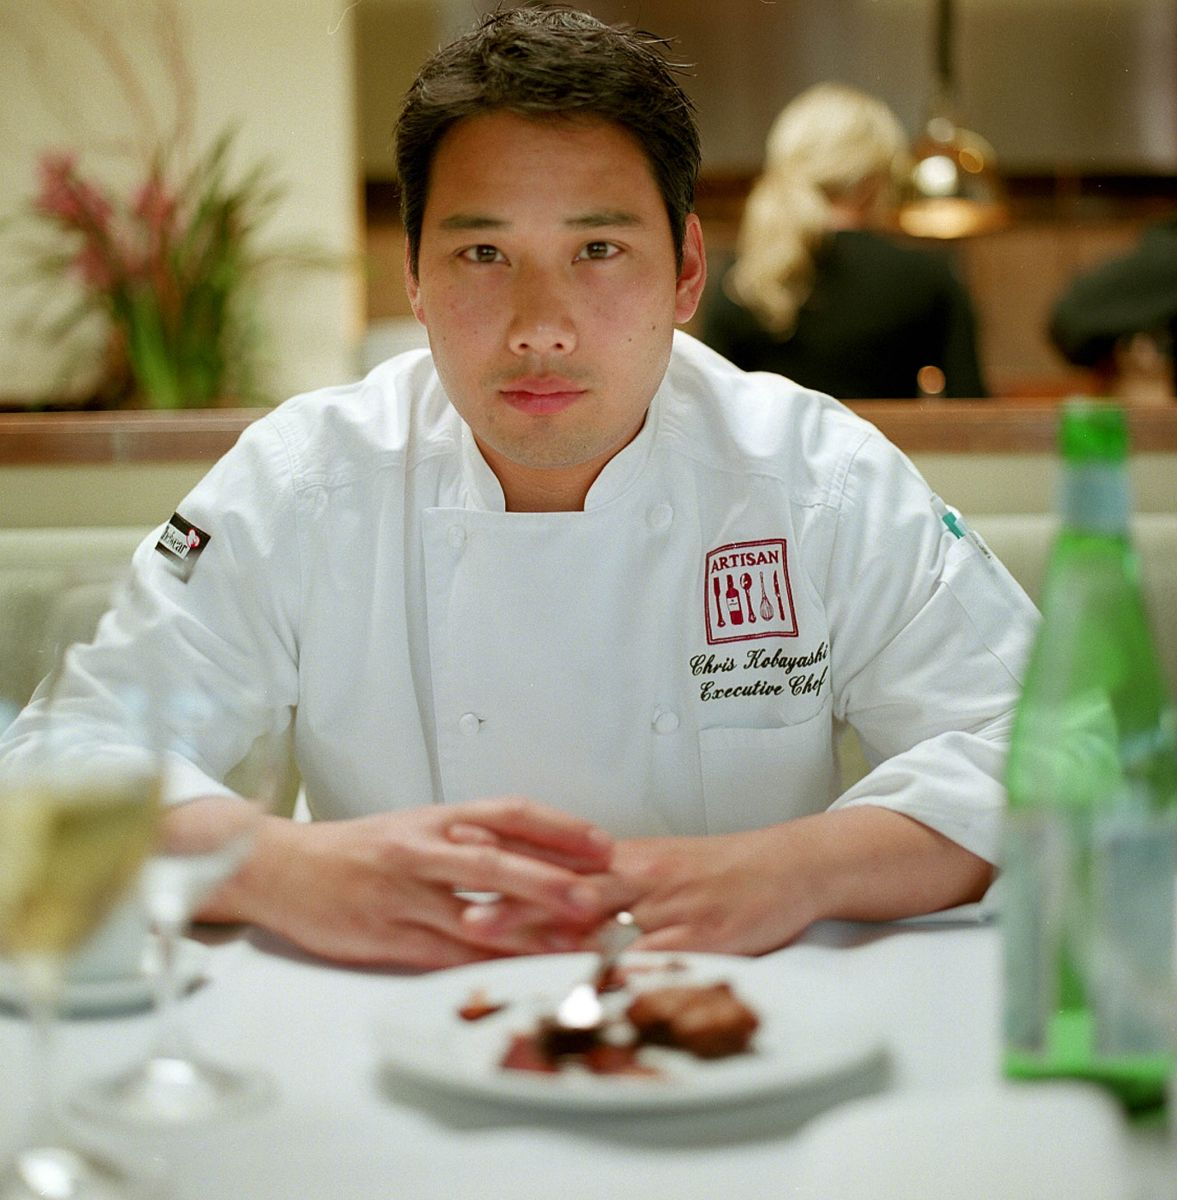 Top 12 Richest Chefs In The World | TheRichest